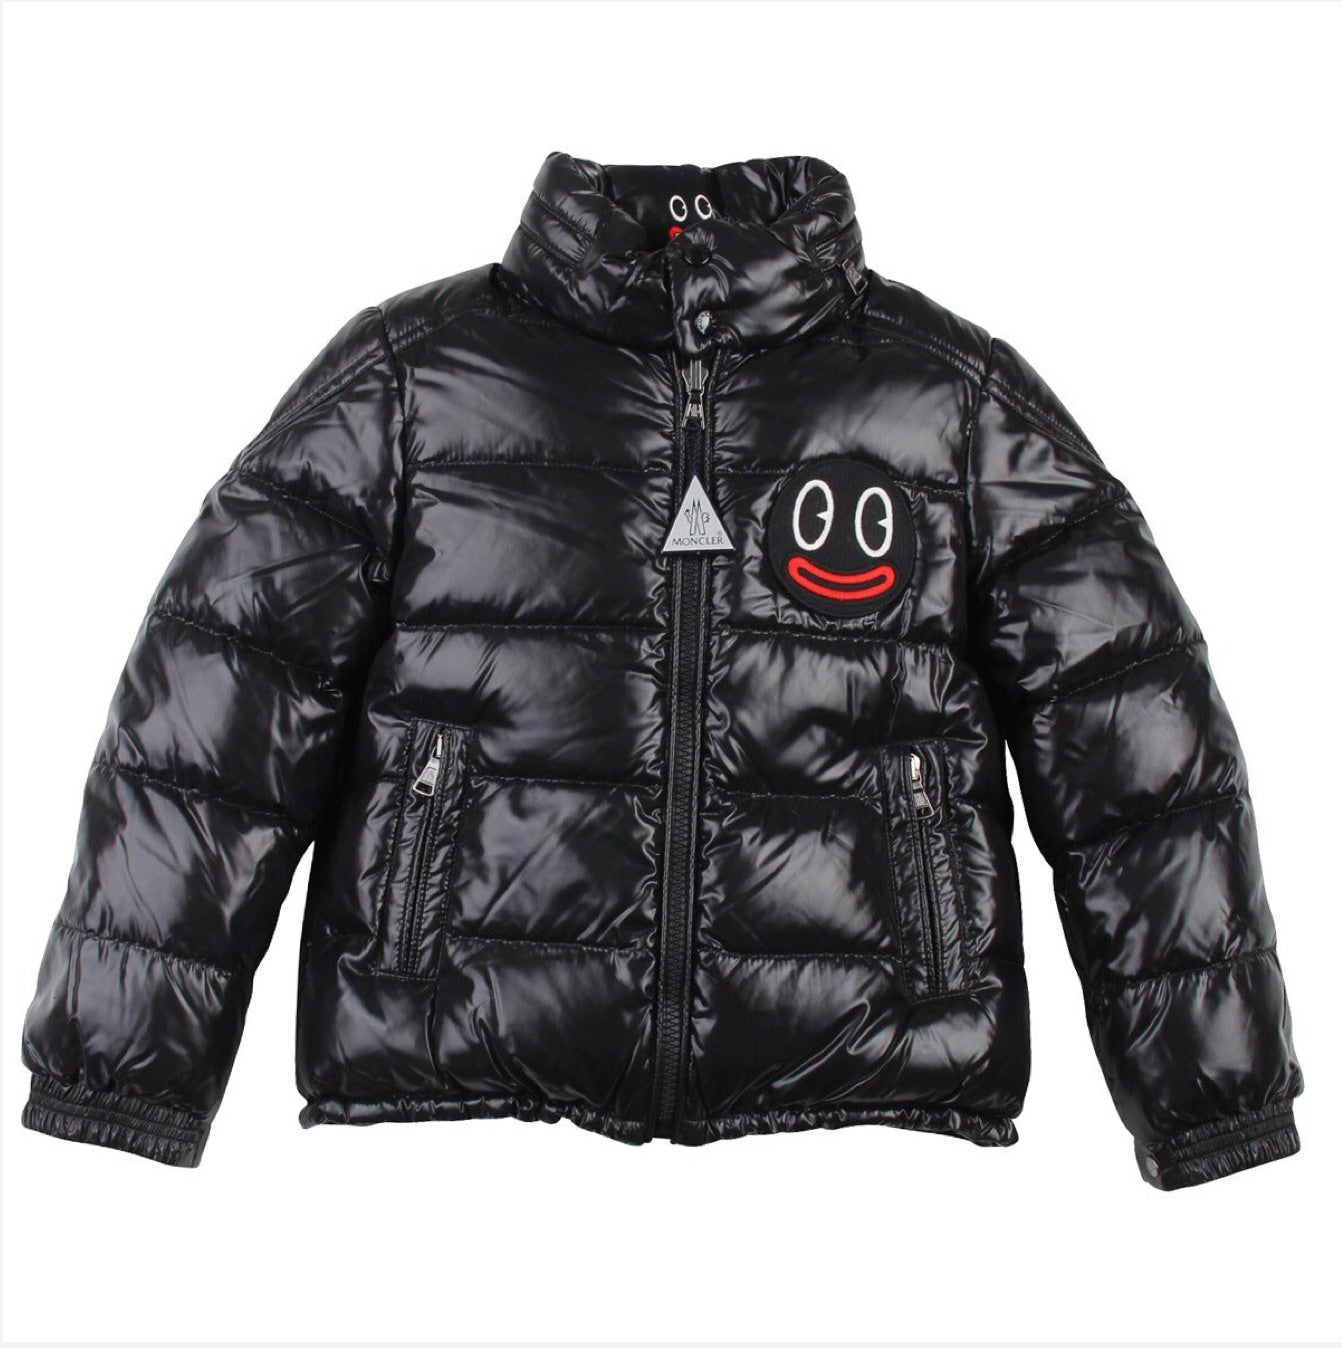 Moncler is Selling a Jacket With Blackface on it, Racist or Nah? (UPDATE)